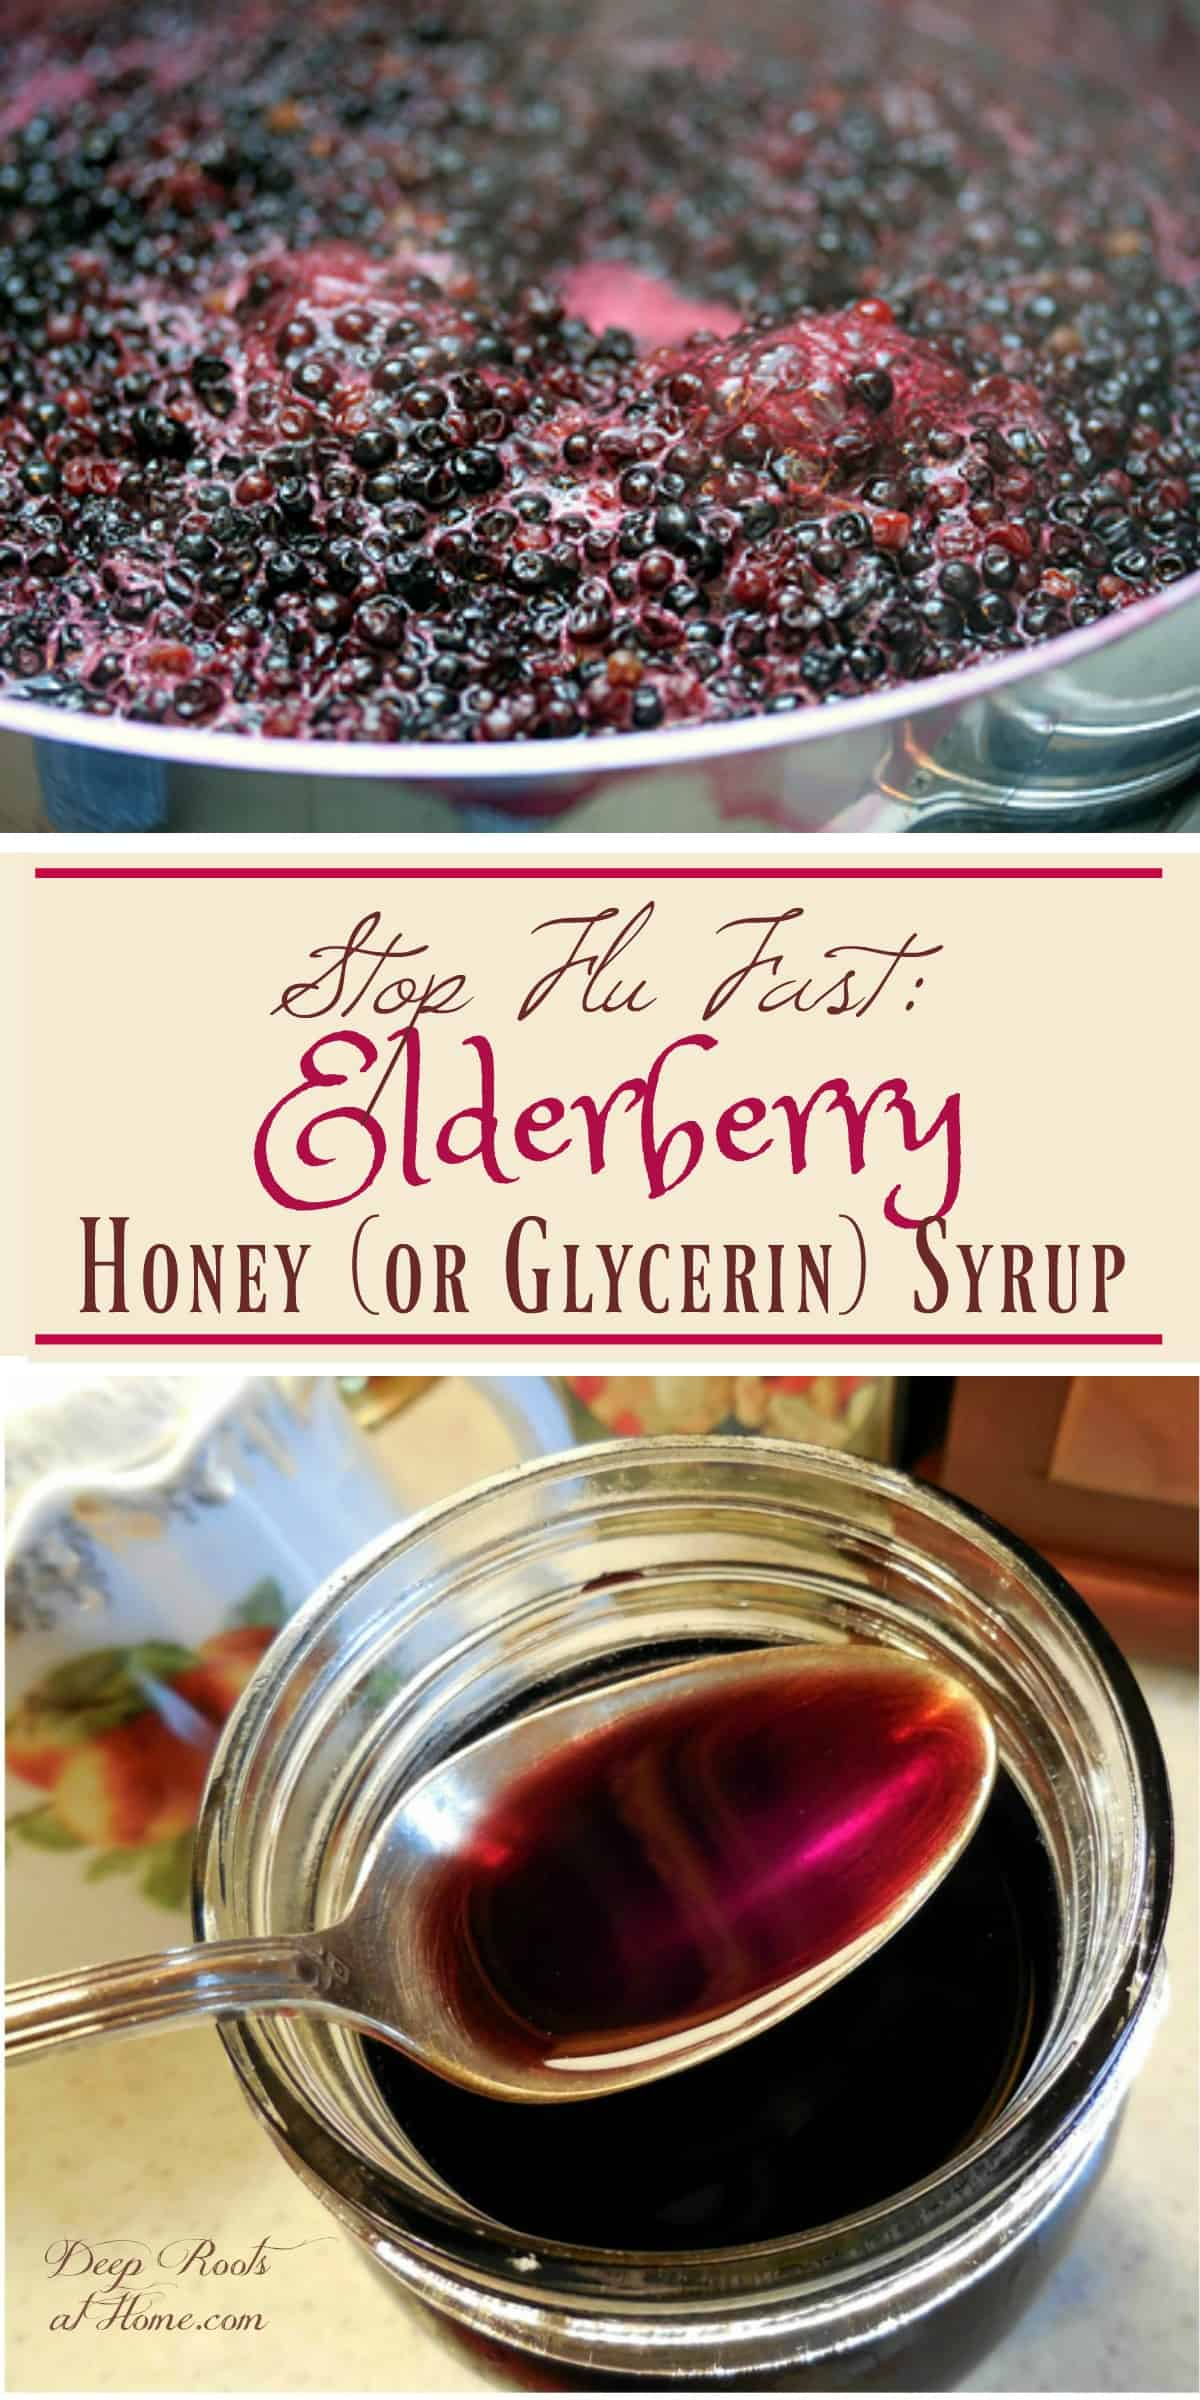 No Flu Shots 4 Us: We Use Elderberry Syrup (99% effective for H5N1)